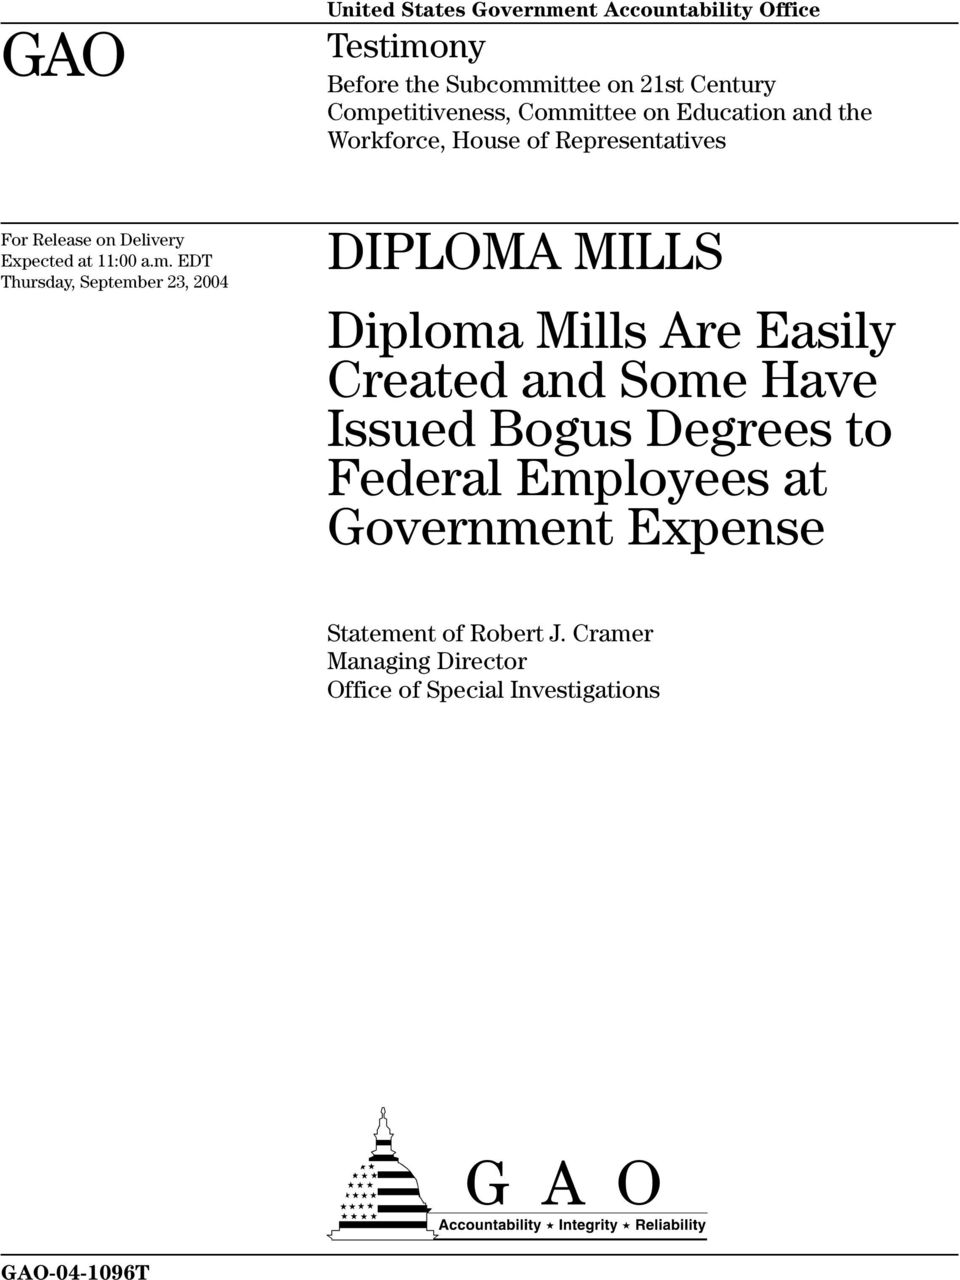 Thursday, September 23, 2004 DIPLOMA MILLS Diploma Mills Are Easily Created and Some Have Issued Bogus Degrees to